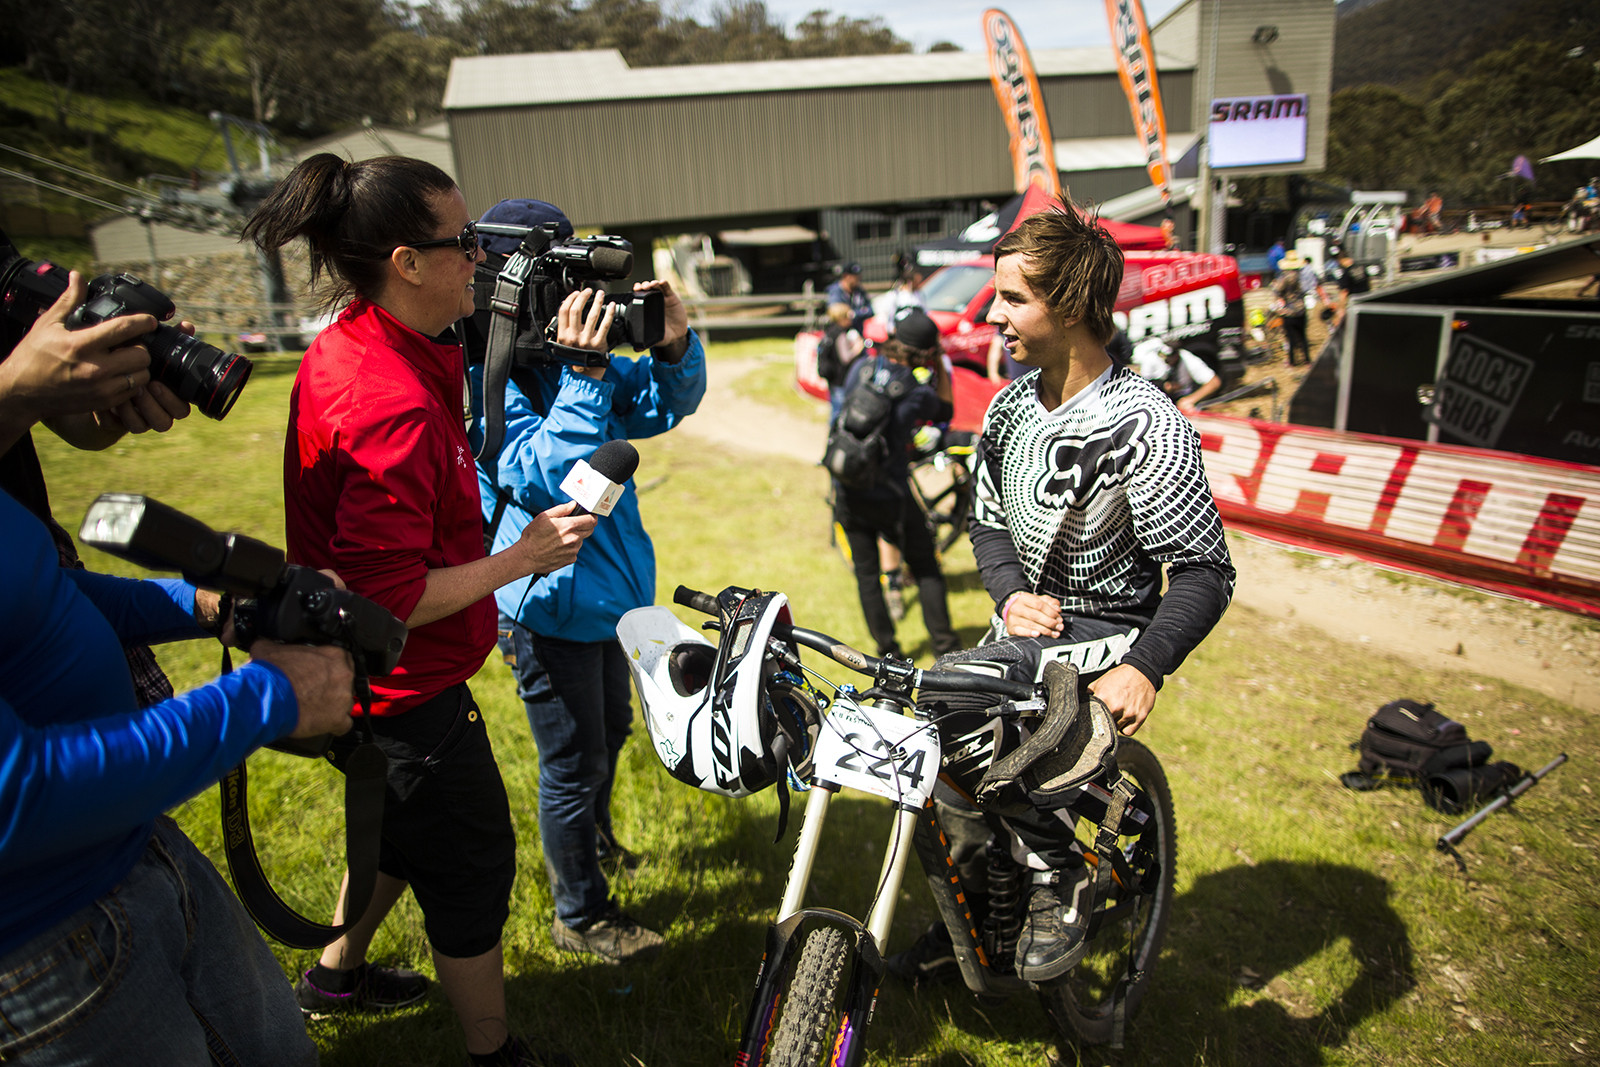 Andrew Crimmins Getting Grilled by the Media After Winning the Thredbo Cannonball Downhill - Winning Bike: Andrew Crimmins' Kona Supreme Operator - Mountain Biking Pictures - Vital MTB